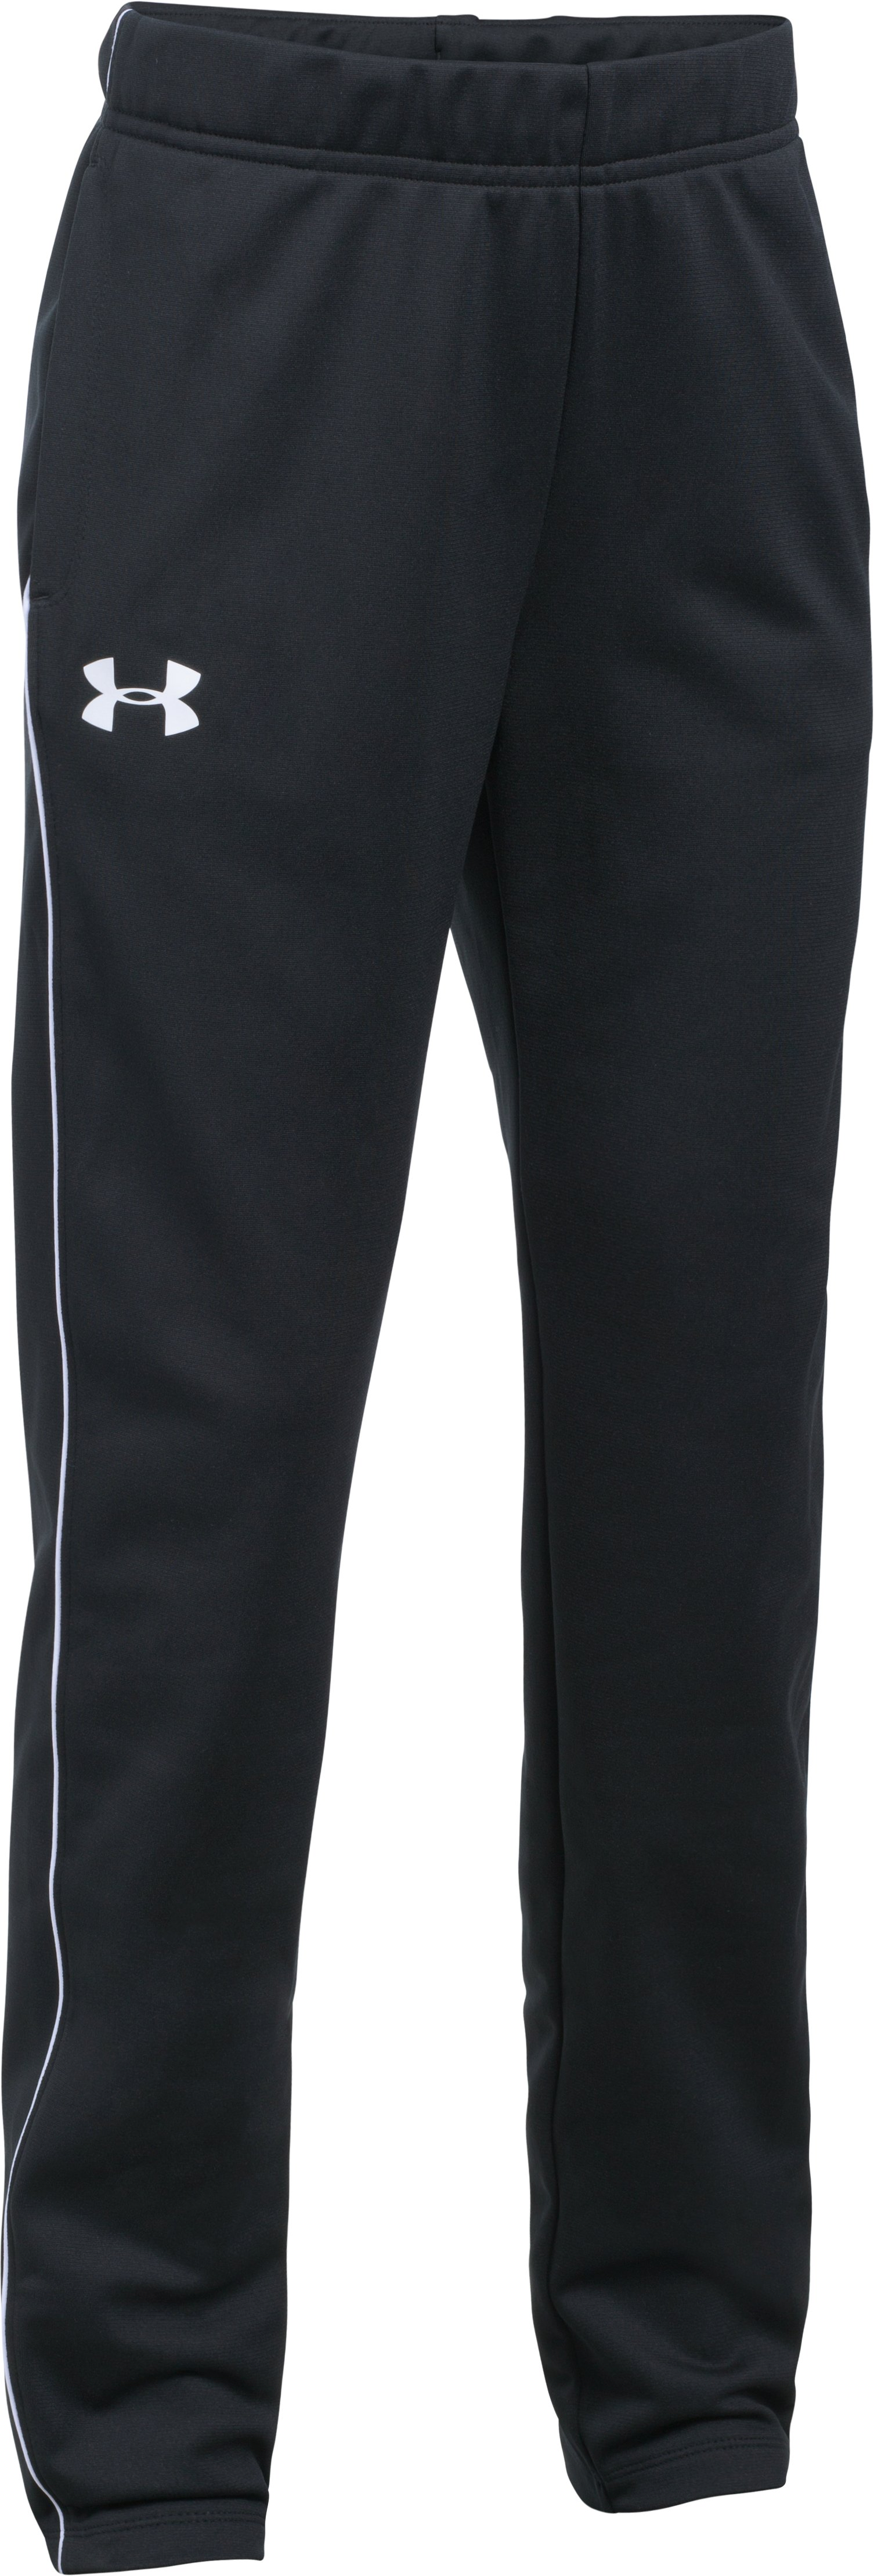 Girls' UA Track Pants 2 Colors $22.49